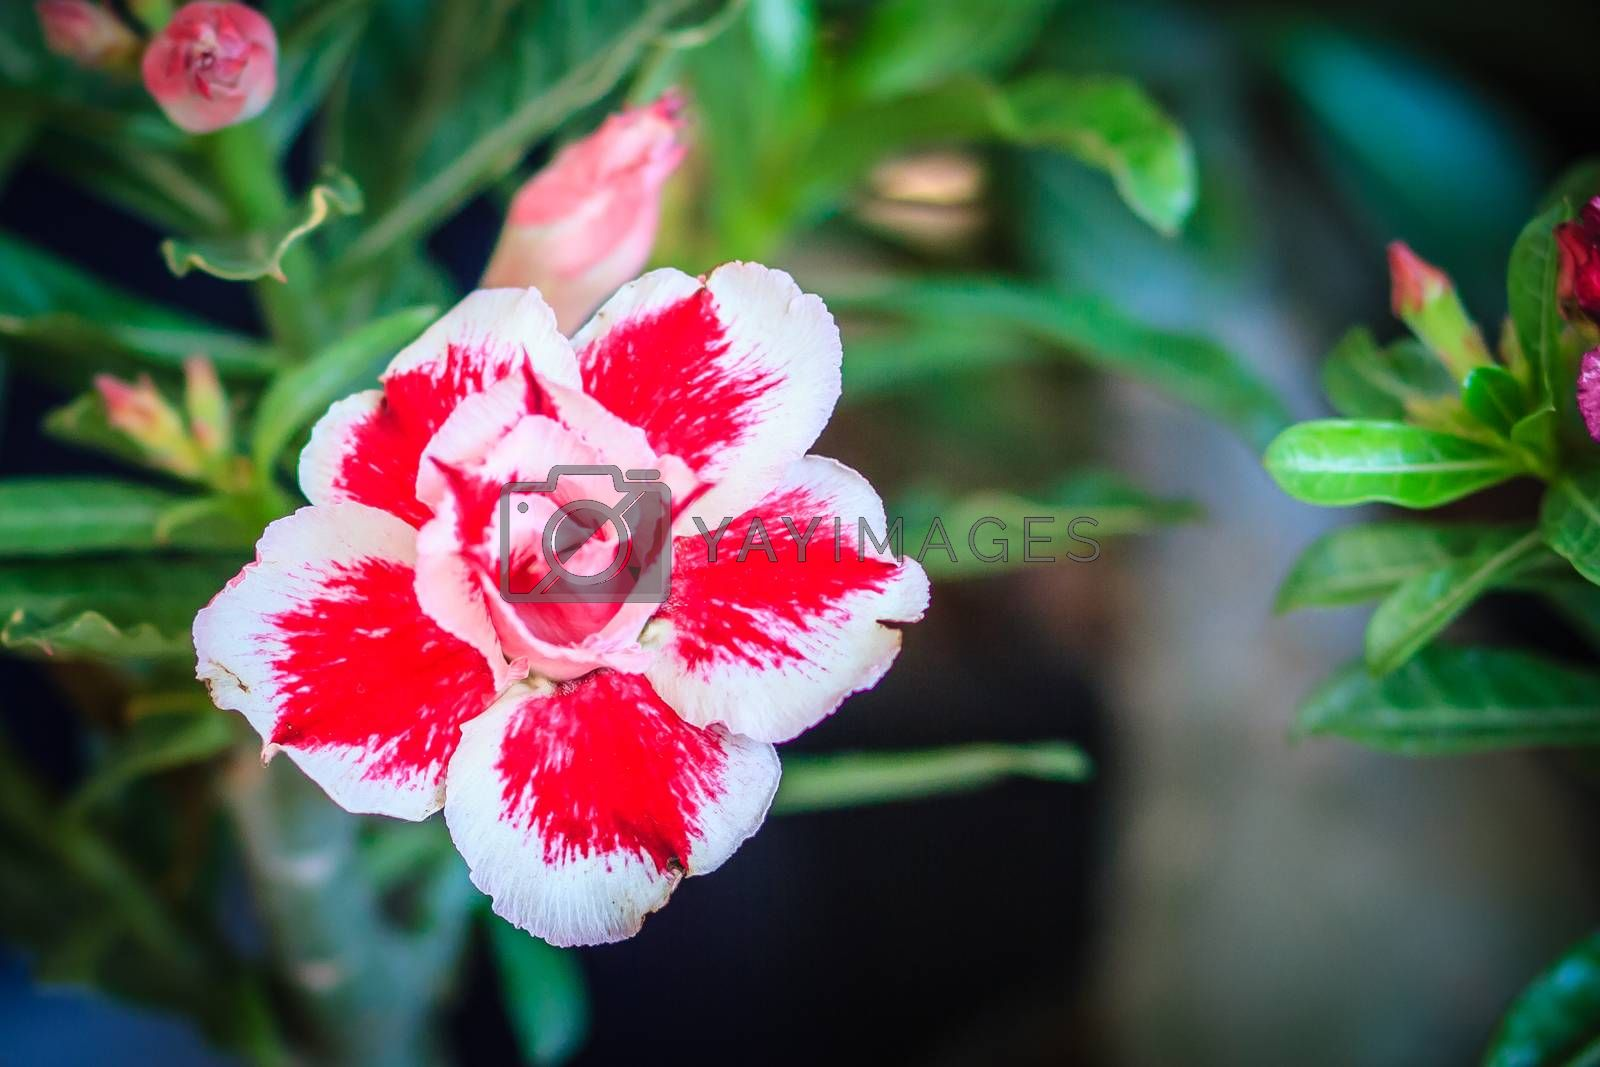 Beautiful hybrid Adenium Obesum (Desert rose) white and pink layers flower for sale at the tree market.